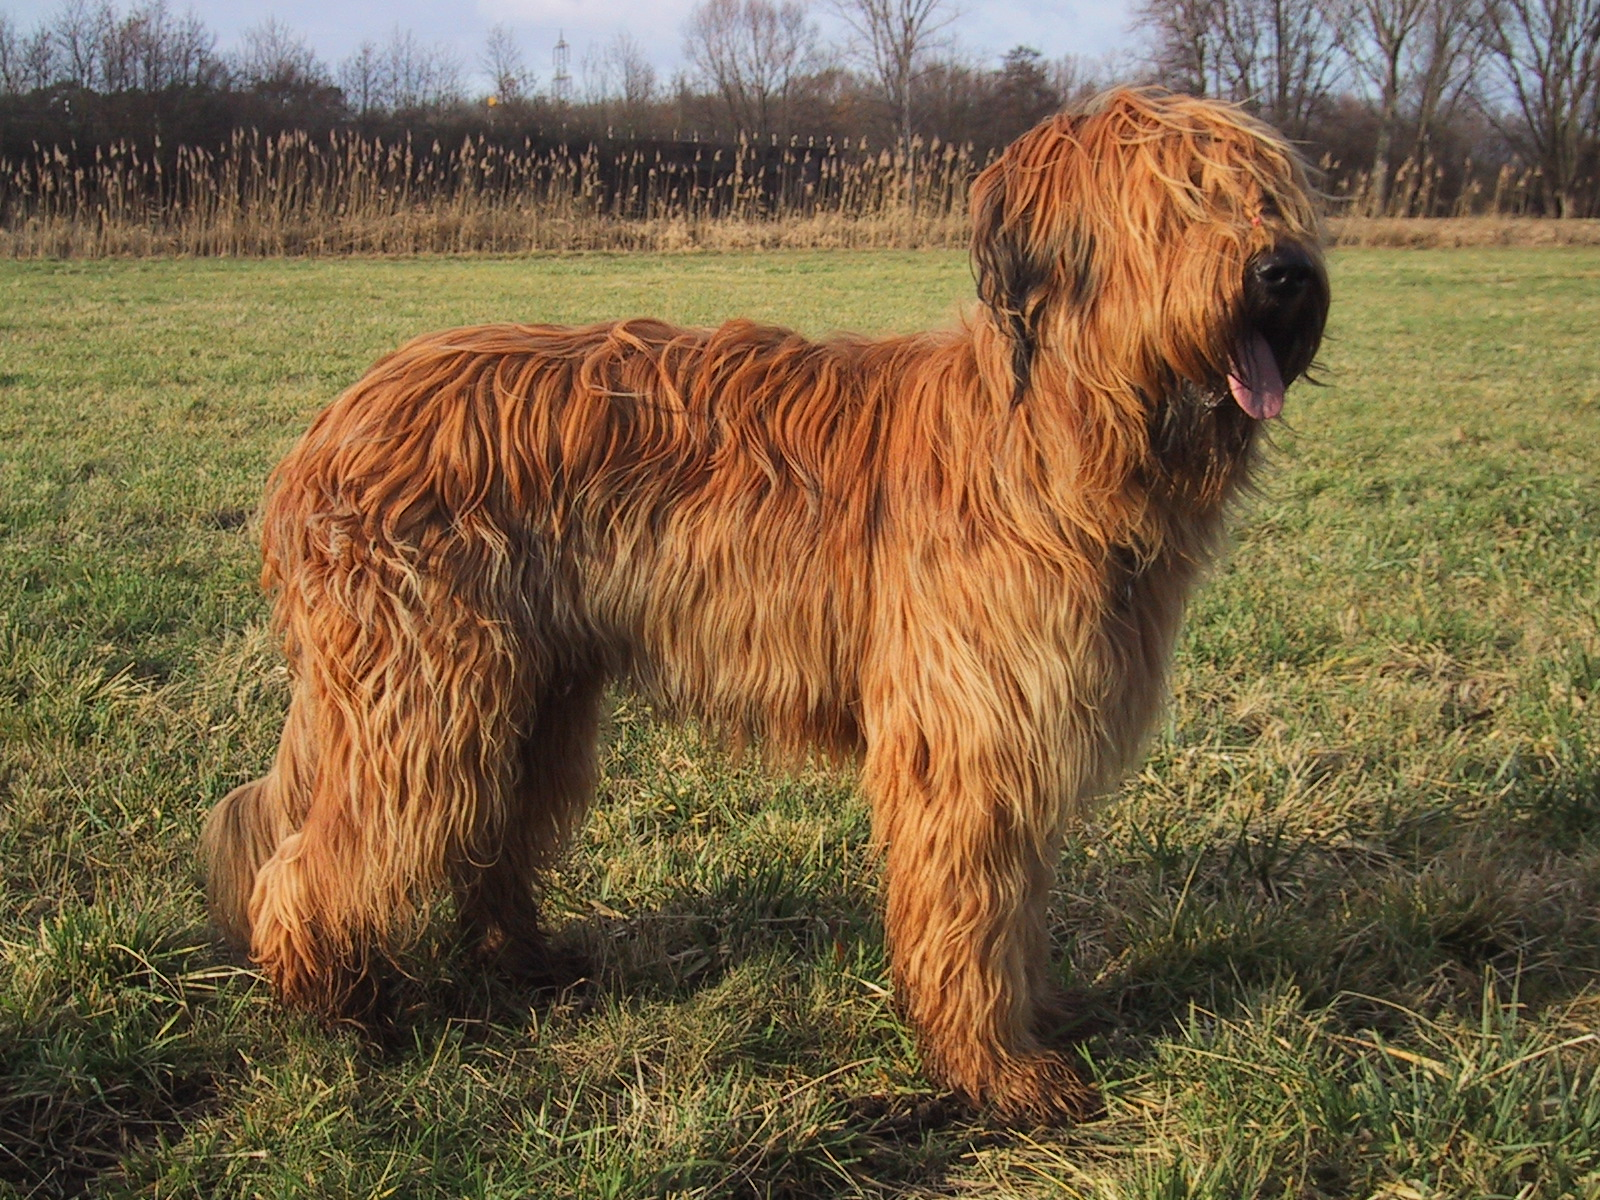 http://upload.wikimedia.org/wikipedia/commons/6/60/Briard_fauve.JPG